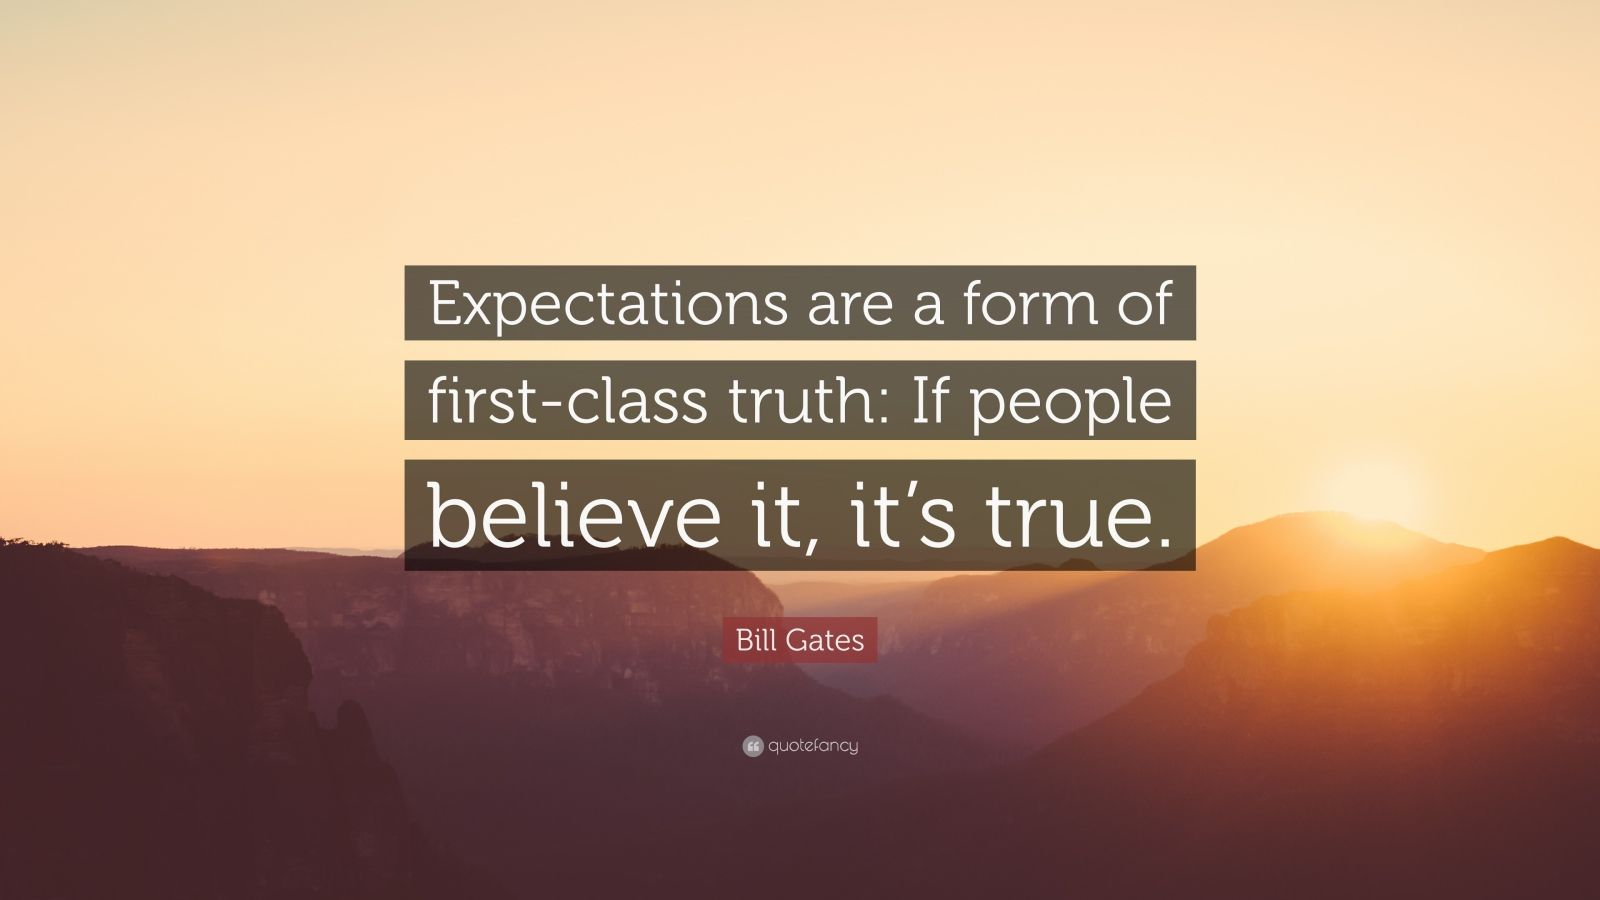 """Bill Gates Quote: """"Expectations are a form of first-class truth: If people believe it, it's true."""""""